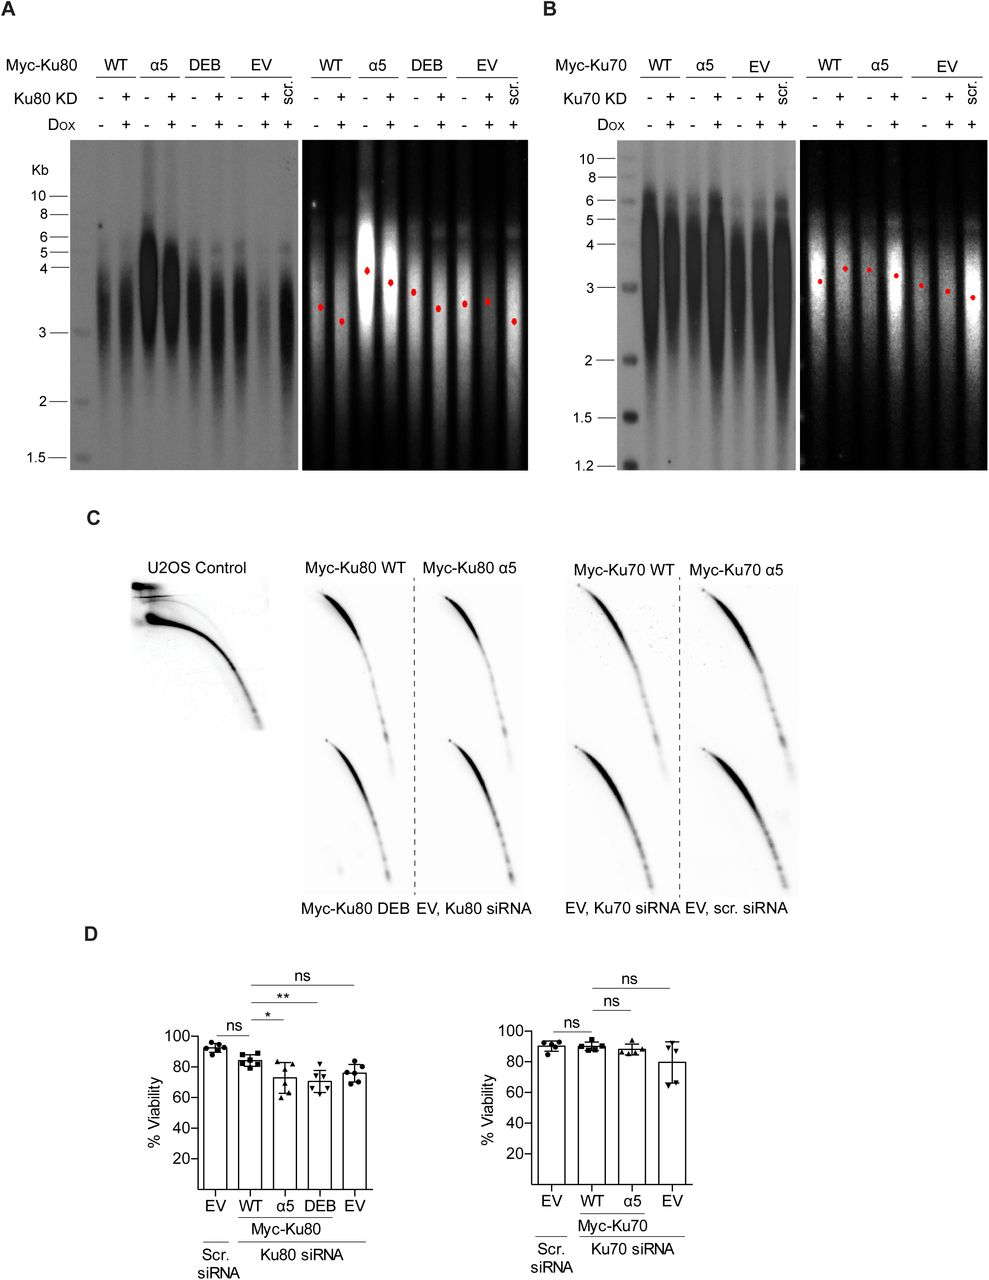 Myc-Ku80 α5 mutant or Myc-Ku80 DEB expression compromises cell viability but does not lead to telomere shortening or t-circle formation in short term cultures. (A) Representative Southern blot analysis to measure telomere lengths of indicated cell lines uninduced or induced to express Myc-Ku80 transgenes. Empty vector cell line transfected with scrambled (scr) or Ku80 siRNA was used as positive and negative controls. KD indicates siRNA-mediated knockdown. Telomere Southern blots were quantified via TeloTool software and the red dot in each lane denotes mean telomere length. Additional representative experiment included in Supplemental Figure S3 (B) Same as A except telomere lengths of indicated cell lines uninduced or induced to express Myc-Ku70 transgenes. Additional representative experiment included in Supplemental Figure S3 (C) 2D gel electrophoresis of HinfI/RsaI digested genomic DNA prepared from indicated cell lines that were subjected to either Ku70 or Ku80 knockdown. U2OS control cell line showing t-circles (D) Analysis of cell viability by Annexin V staining of indicated cell lines expressing Myc-Ku80 or Myc-Ku70 transgenes. Empty vector cell line transfected with scrambled (scr) or Ku70 or Ku80 siRNA was used as controls.